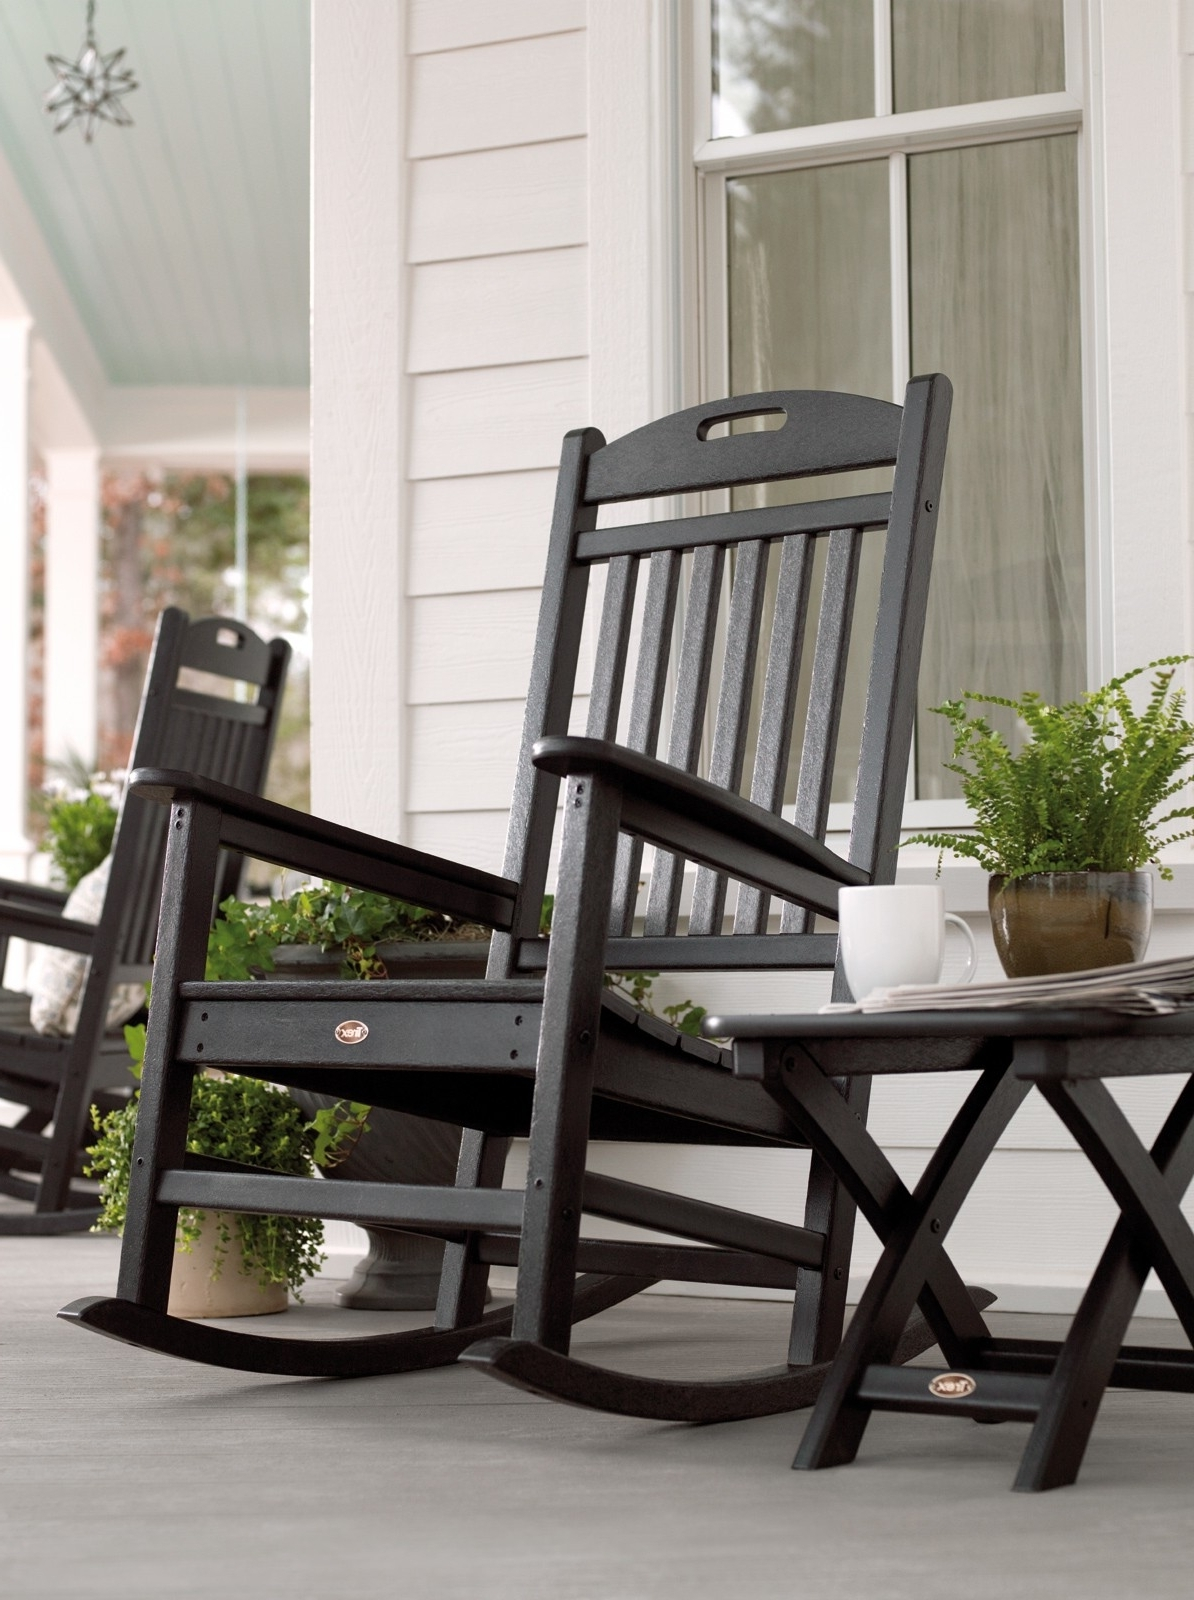 Rocking Chairs For Outside With Well Liked Patio & Garden : Outdoor Rocking Chair Seat Cushions Outdoor Rocking (View 14 of 20)